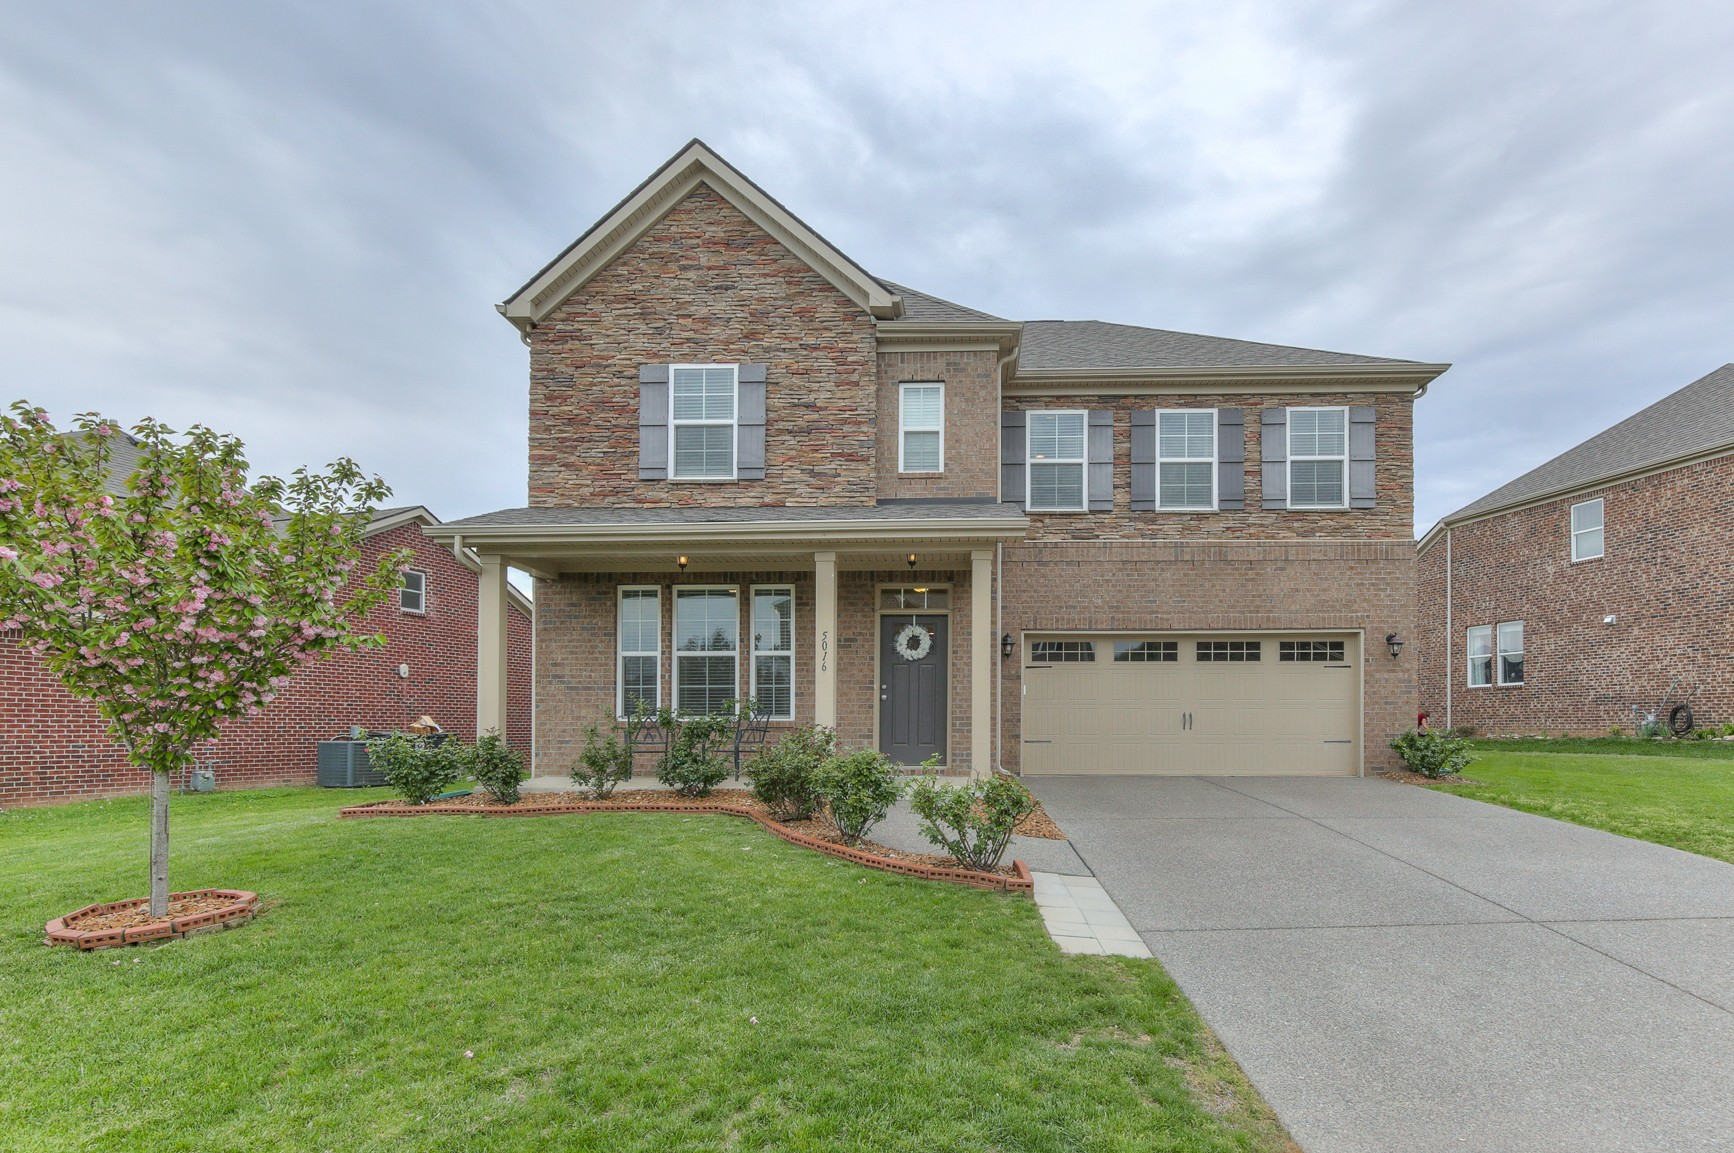 5016 Napoli Dr Property Photo - Mount Juliet, TN real estate listing